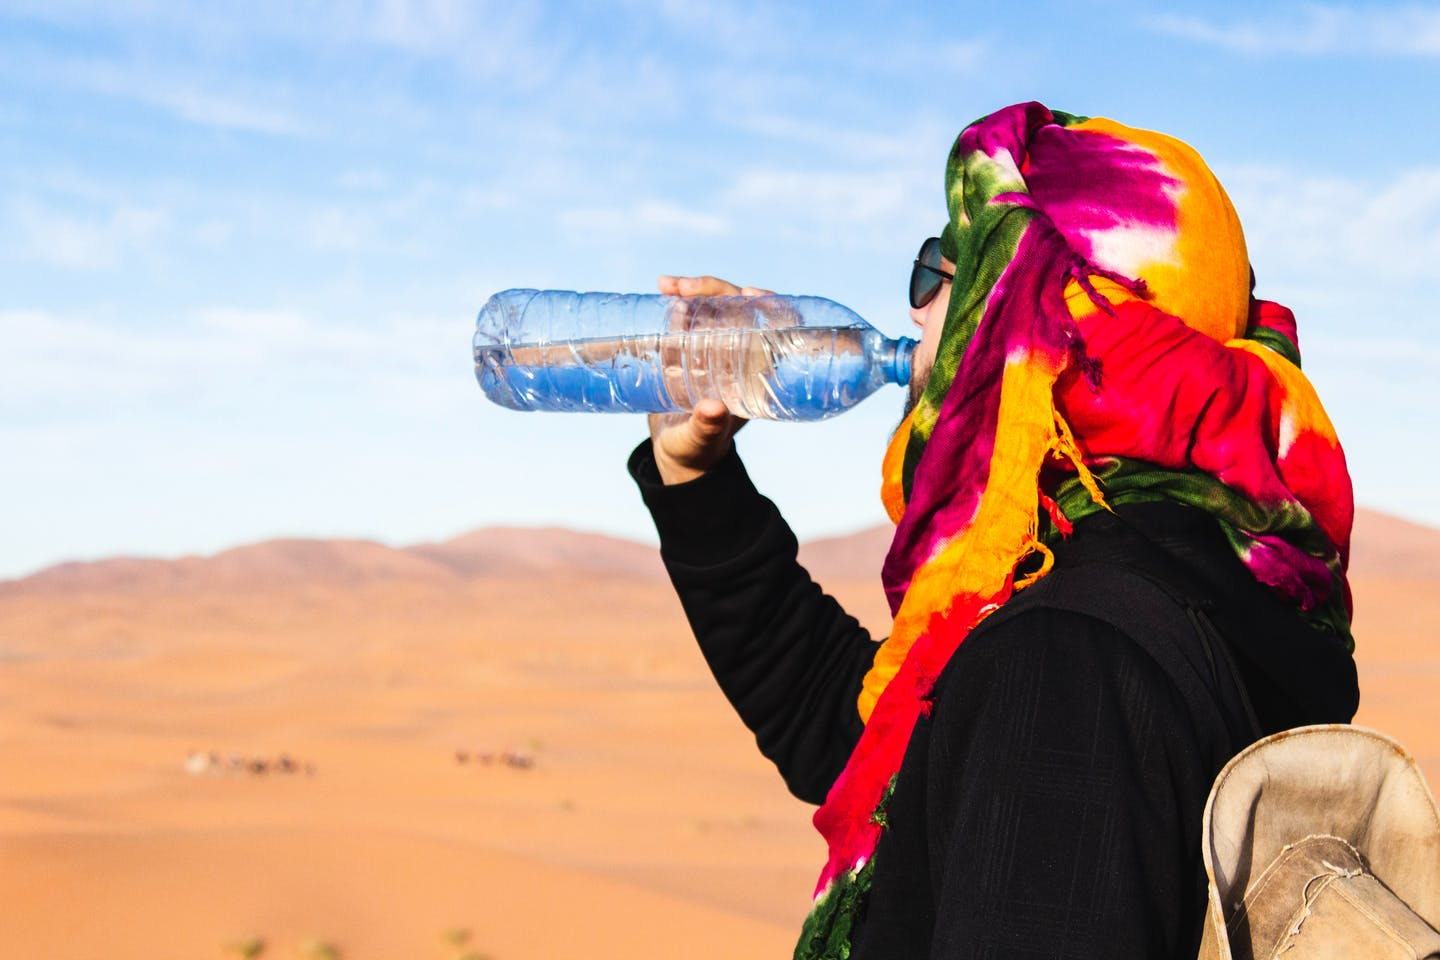 Traveller drinks water from a plastic bottle